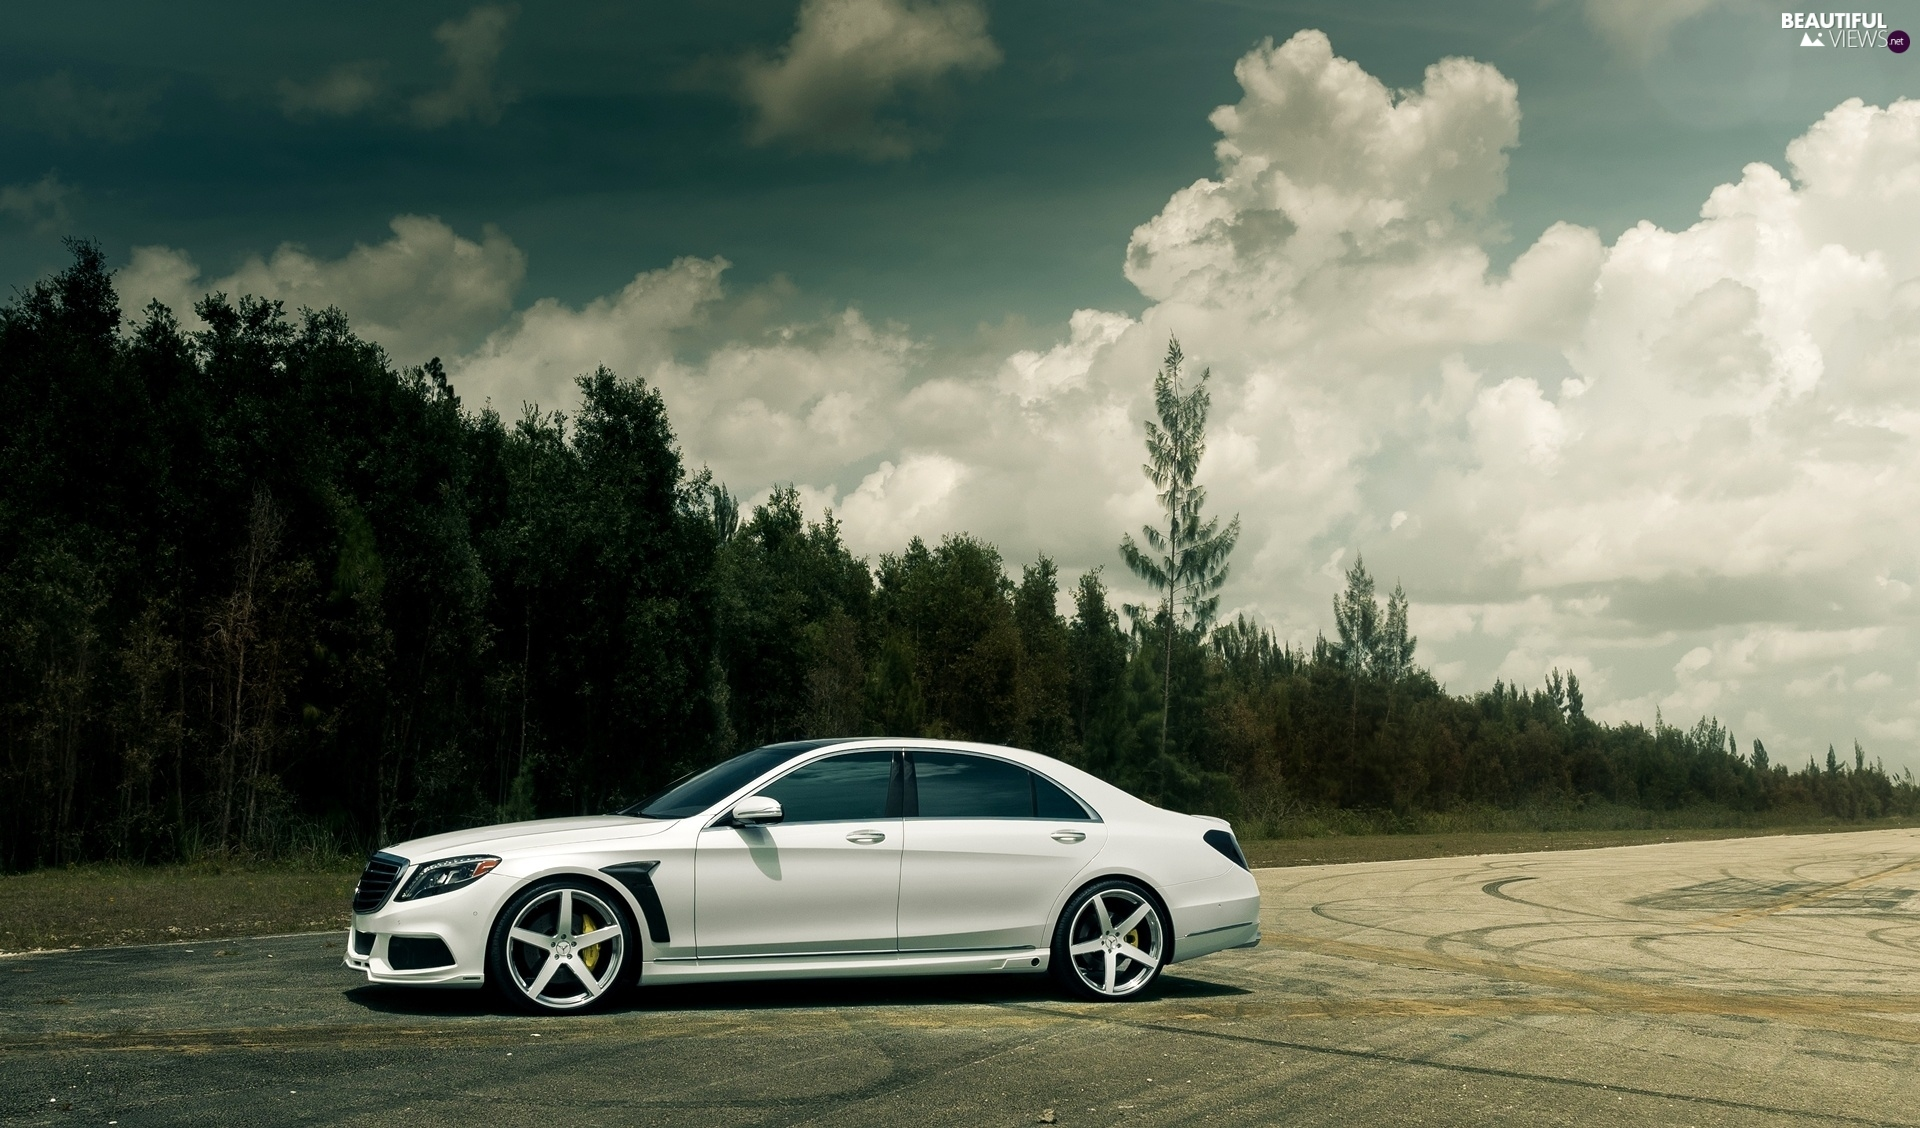 Forest clouds mercedes benz white beautiful views for Mercedes benz lake forest